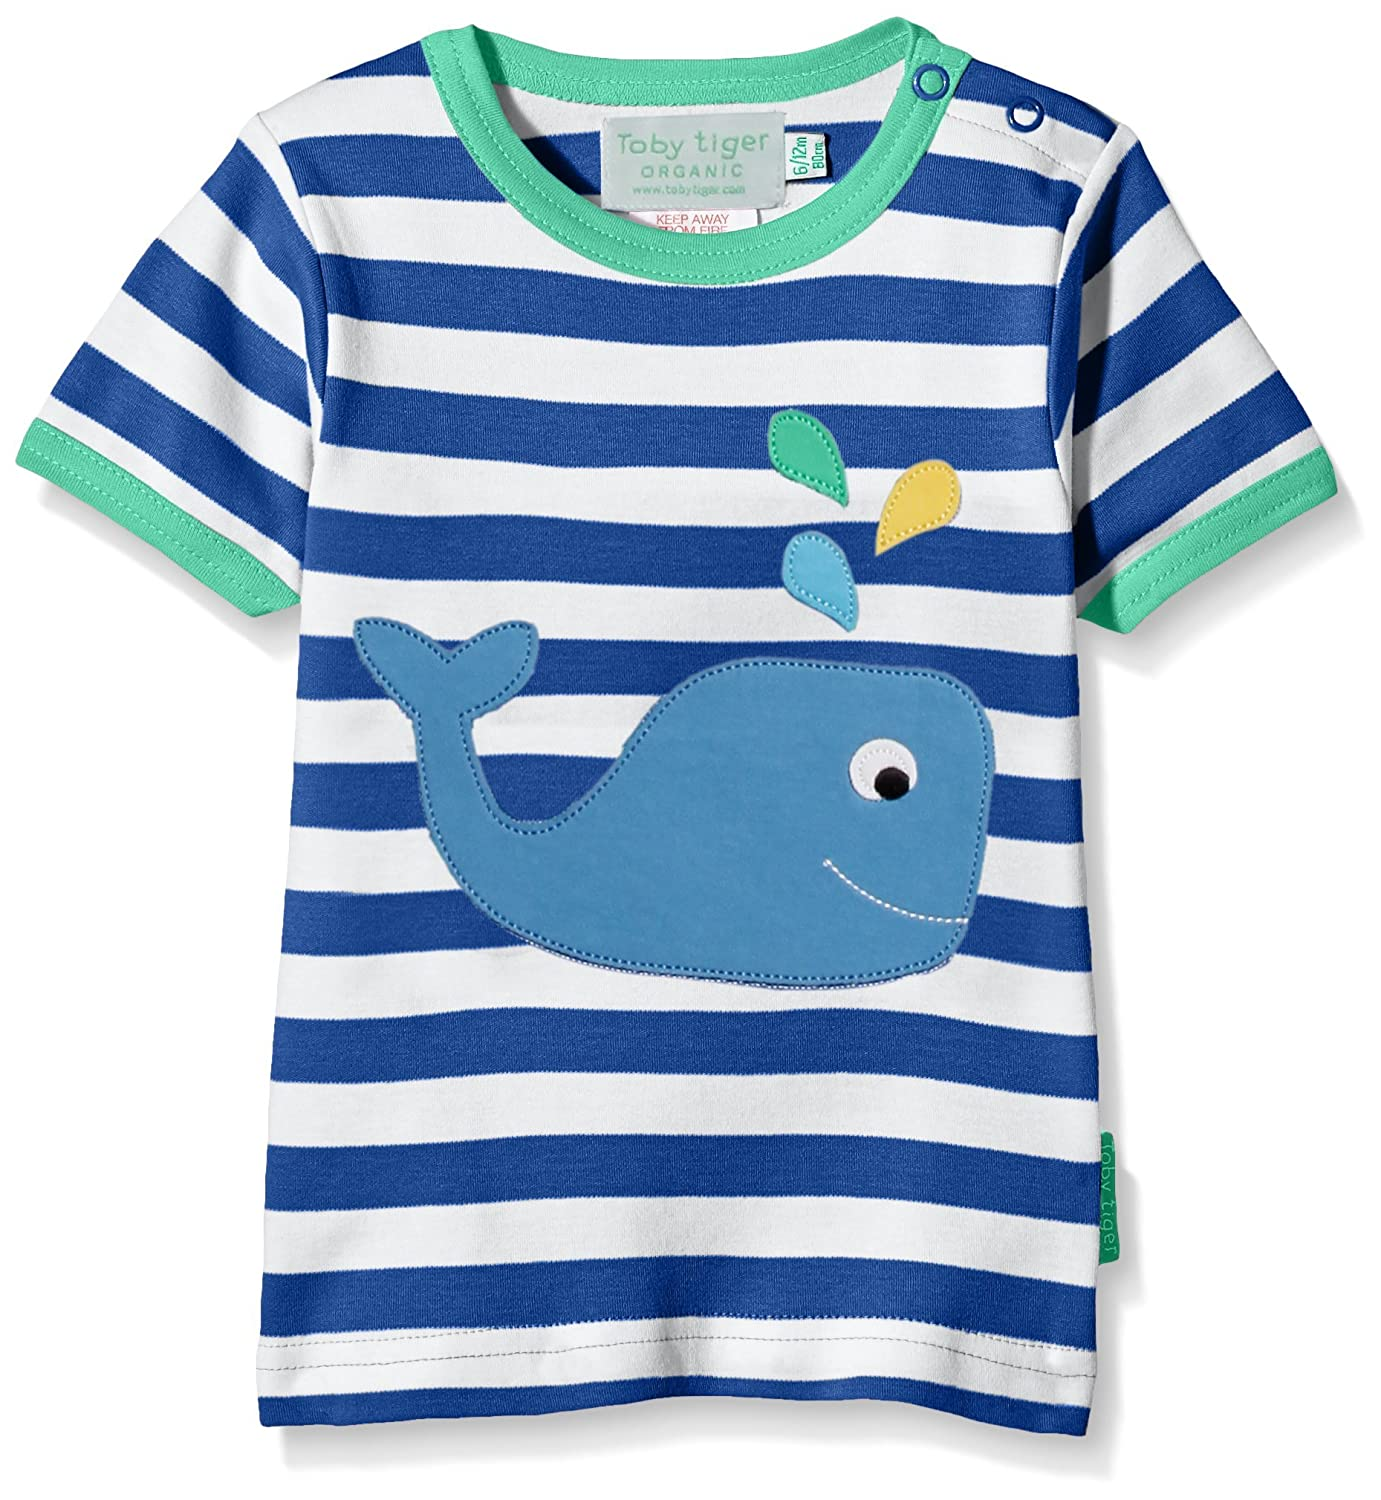 Toby Tiger Organic Cotton Whale Applique Short Sleeved T-Shirt